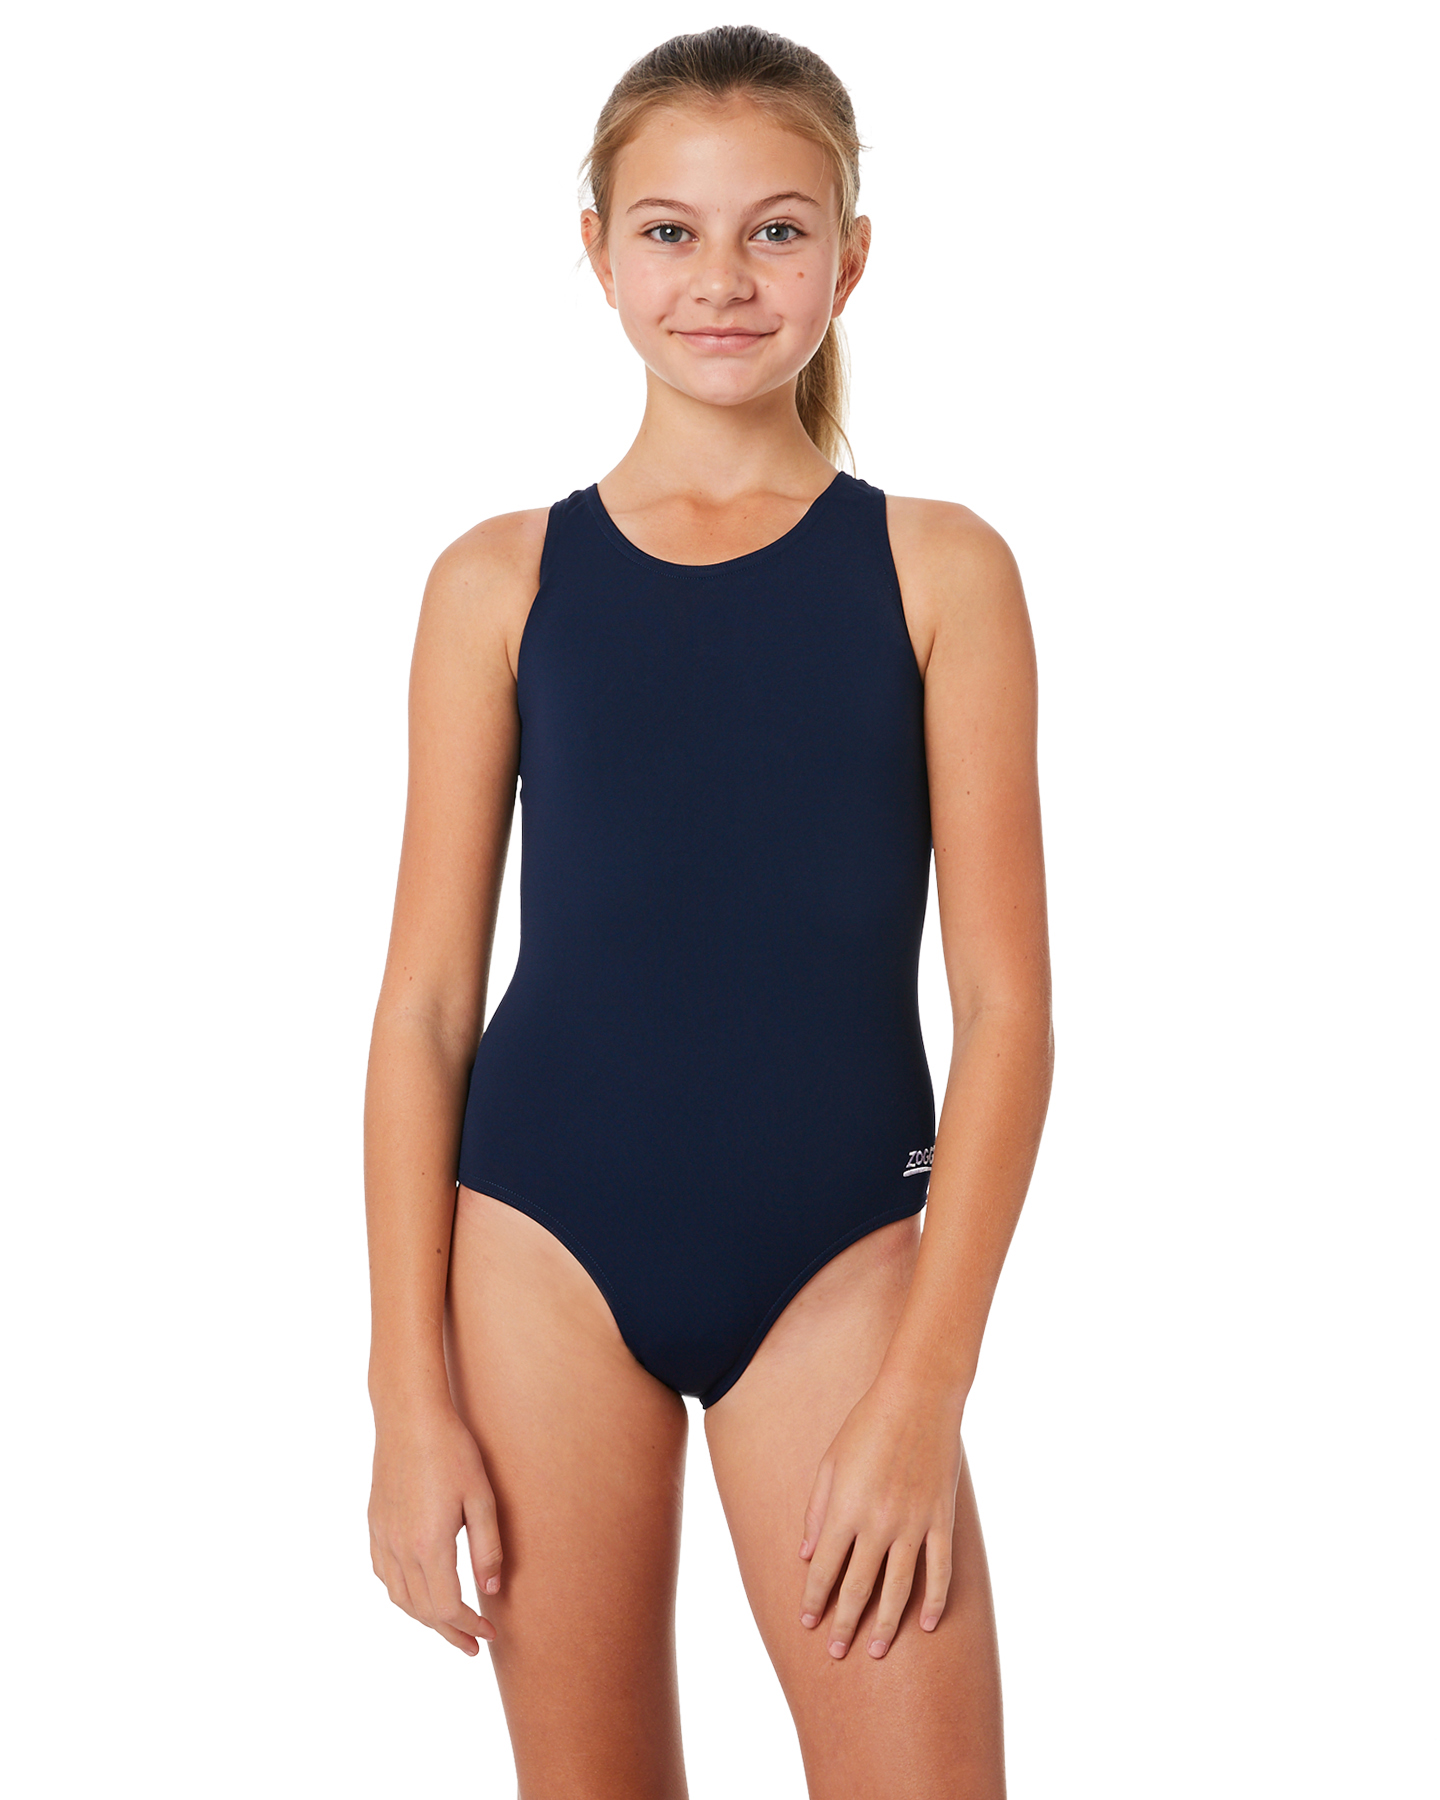 4d9ede42184 Zoggs Kids Girls Cottesloe One Piece Navy Navy Girls swimsuits Size ...